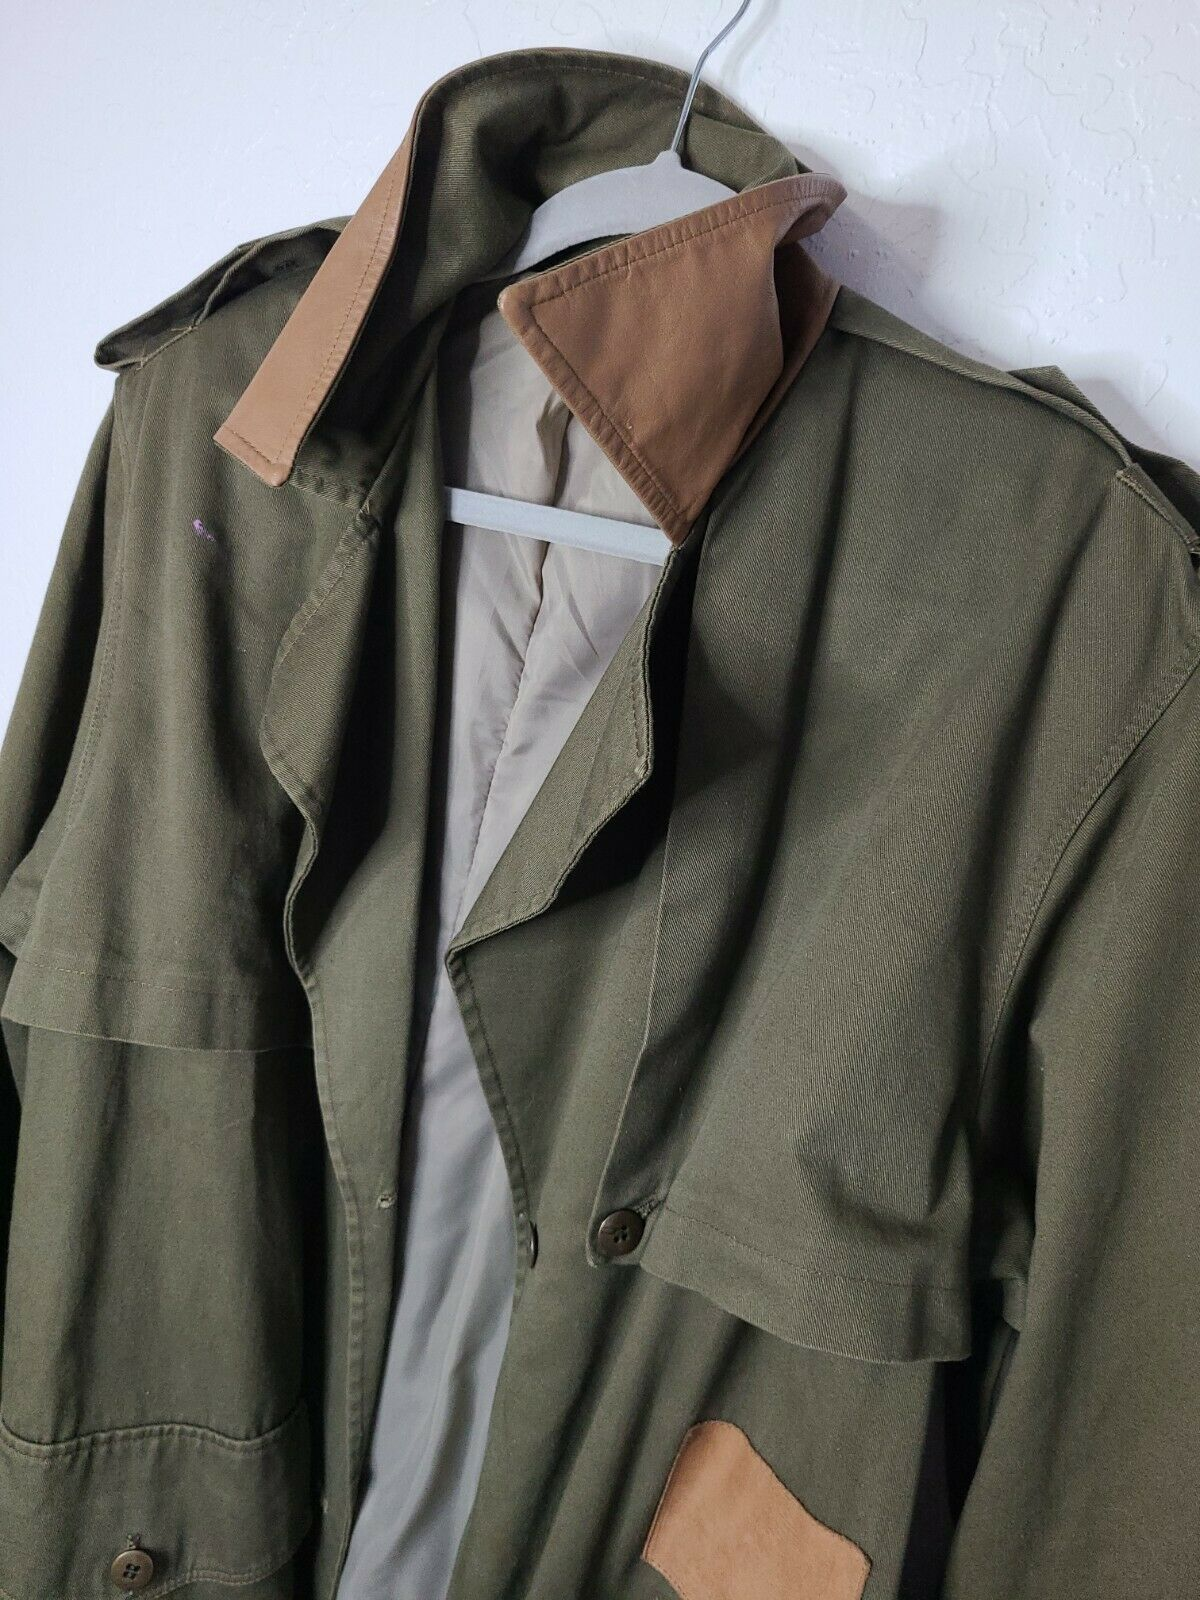 Classic Military Style Trench Coat, Olive Army Gr… - image 6